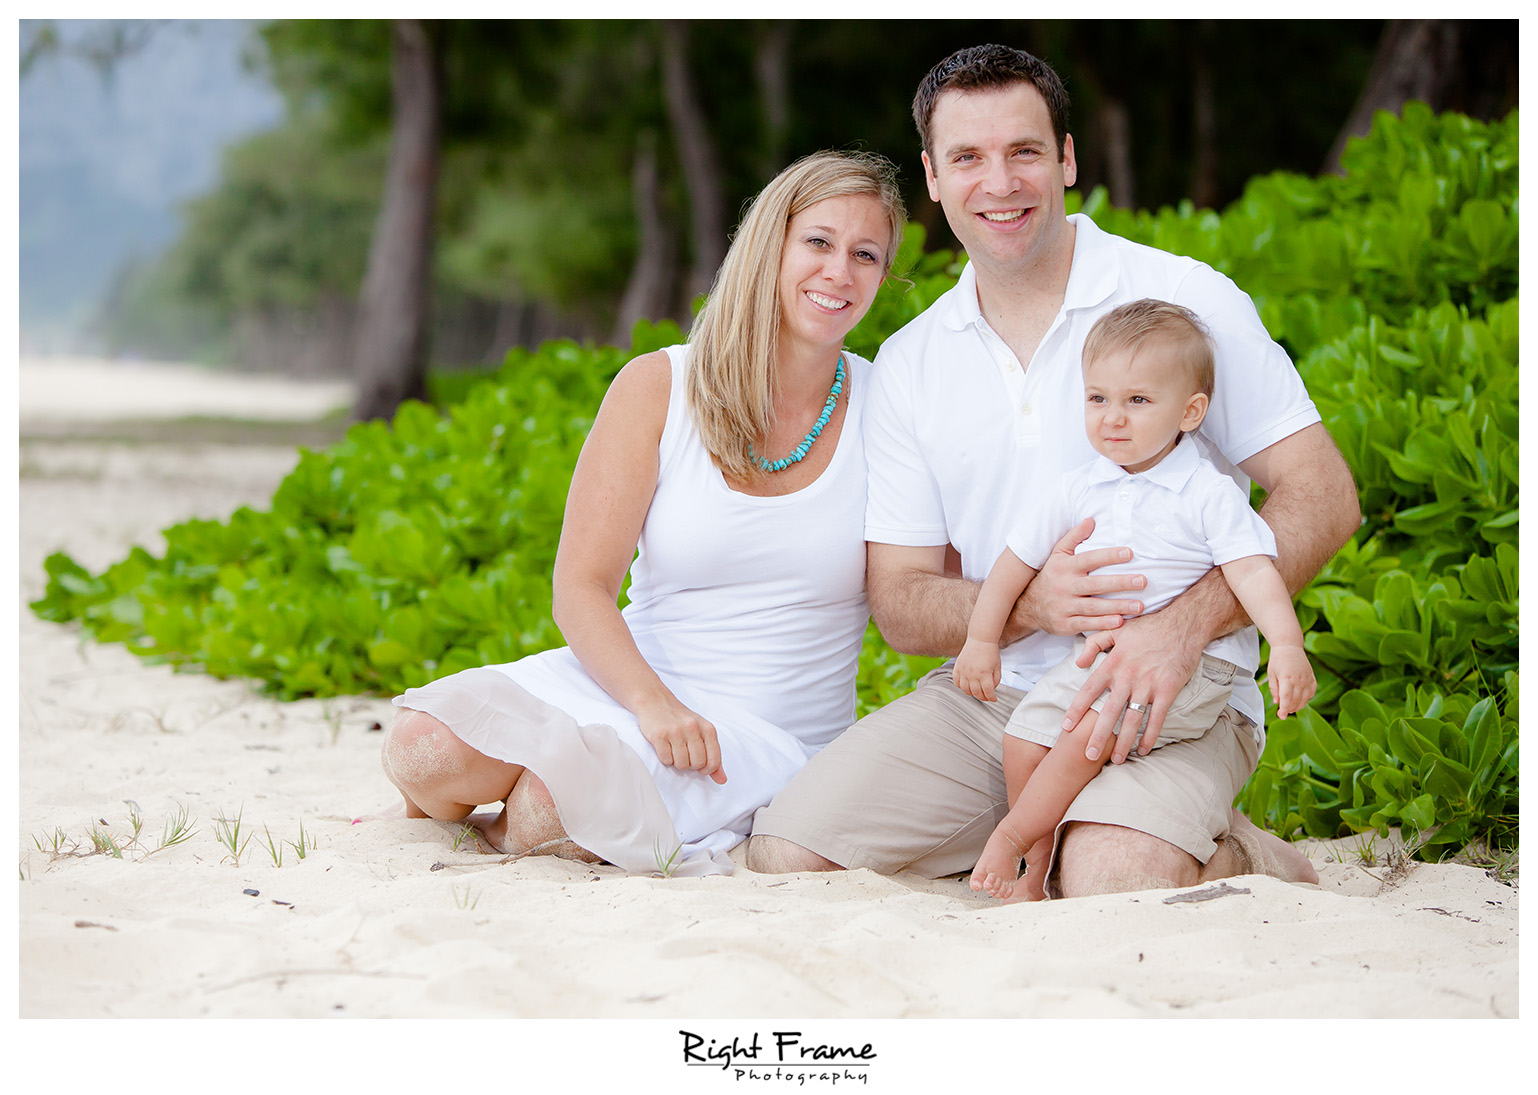 008_family pictures in oahu hawaii